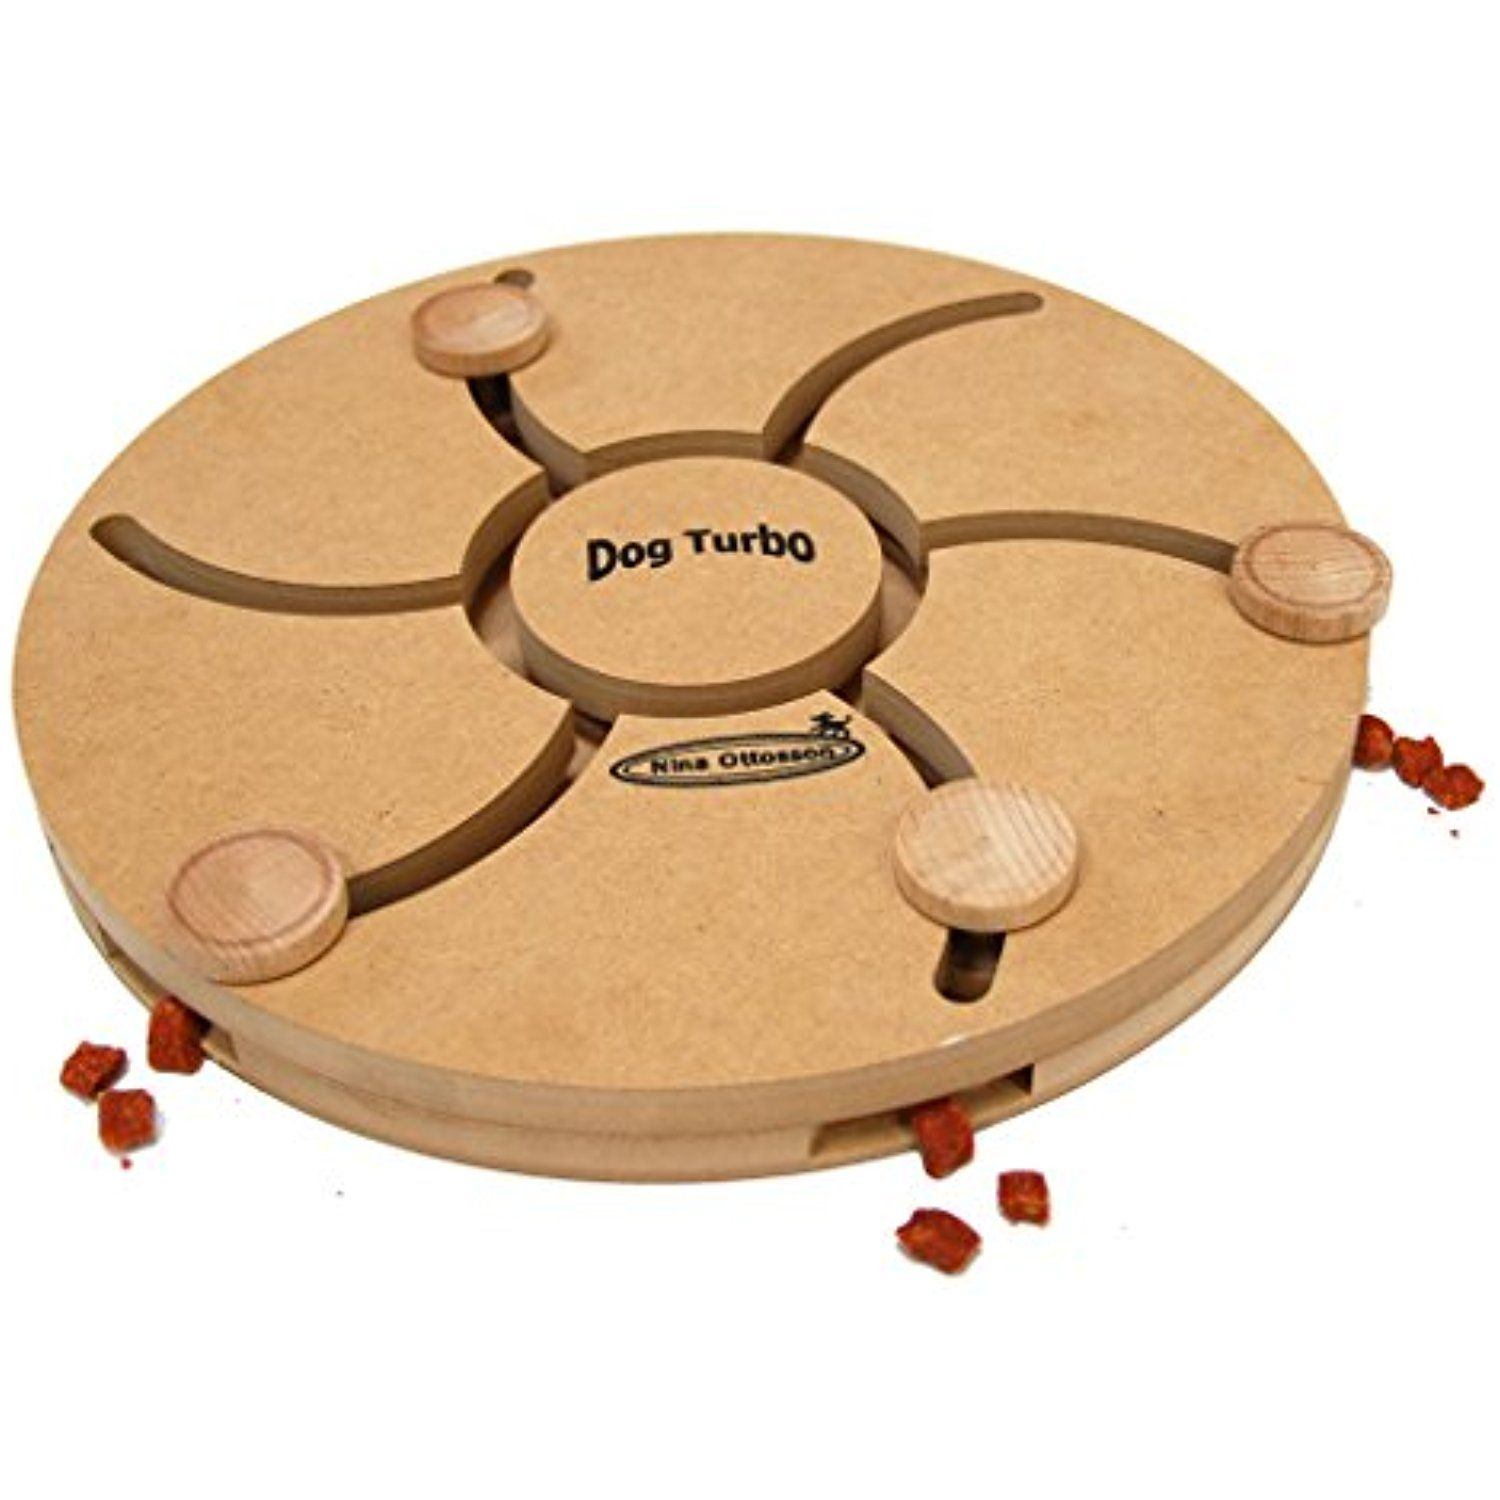 Nina Ottosson Dog Turbo Interactive Doy Toy Puzzle For Dogs Wood